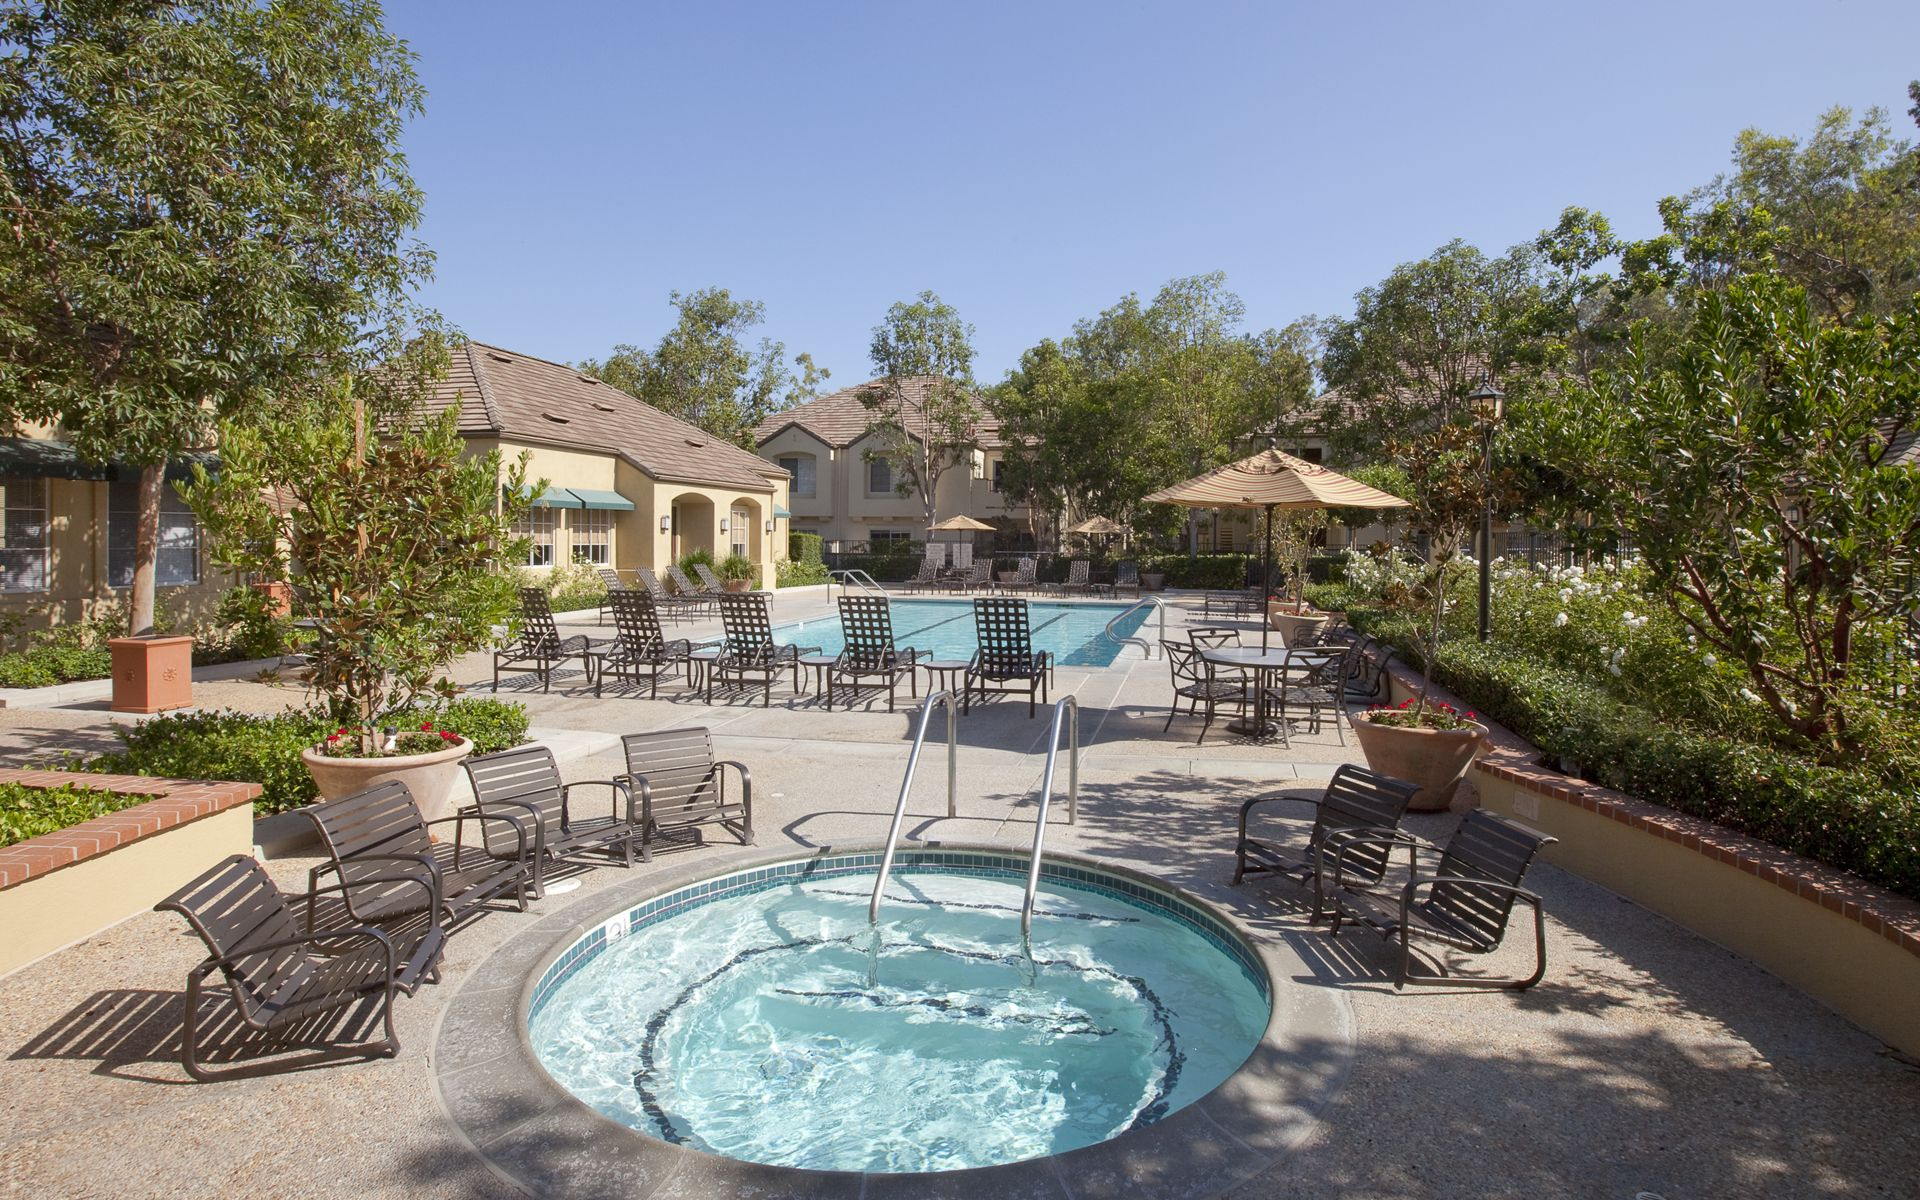 Exterior view of pool and spa at Turtle Rock Canyon Apartment Homes in Irvine, CA.